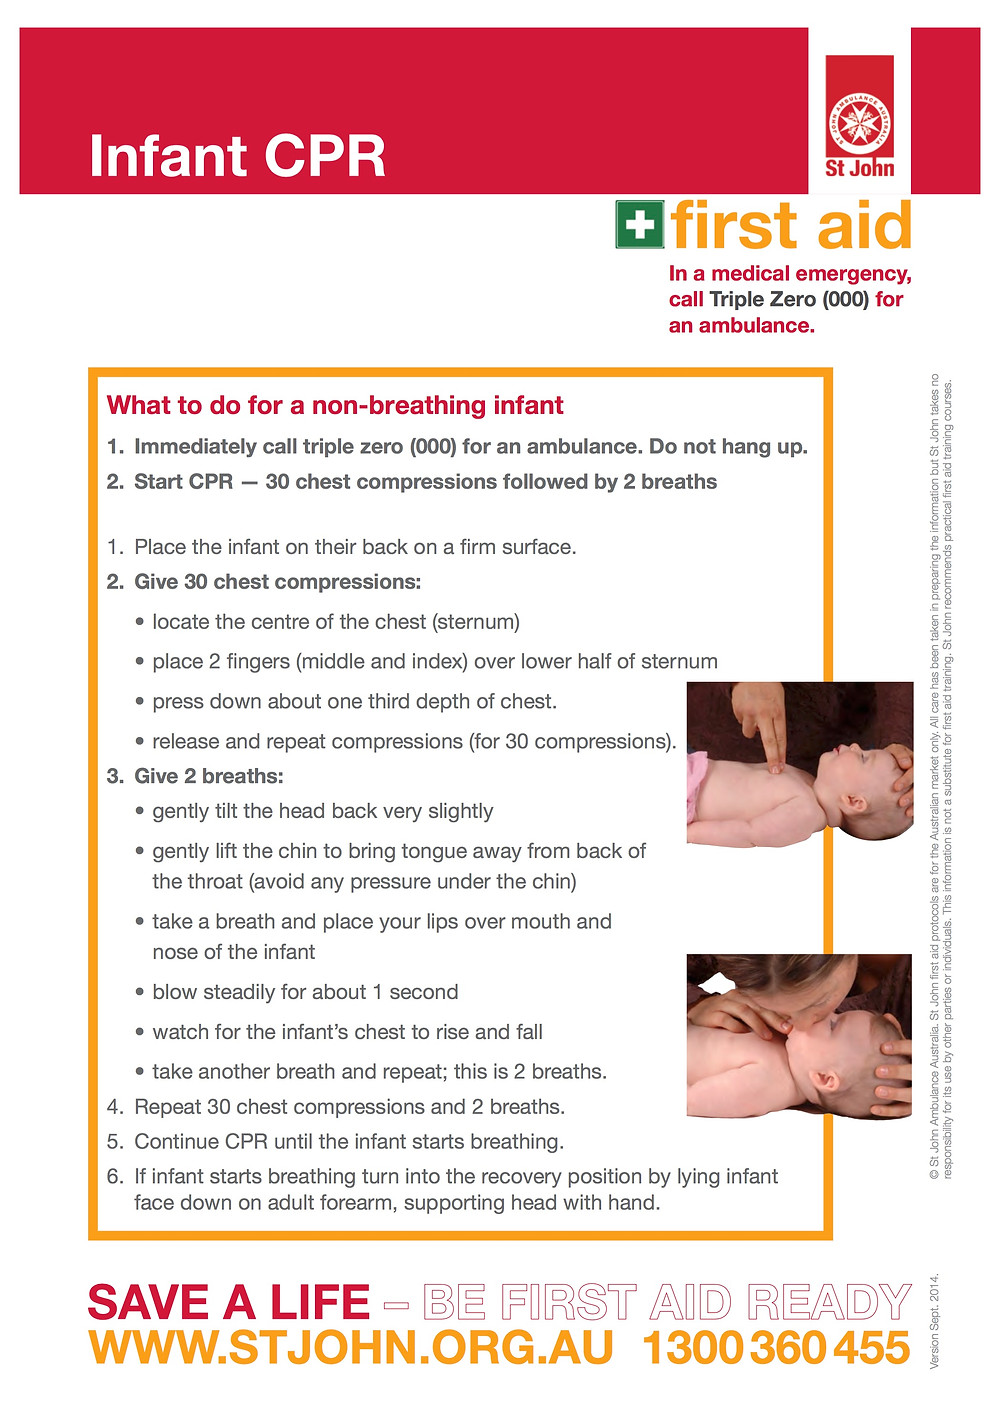 First aid chart showing infant CPR